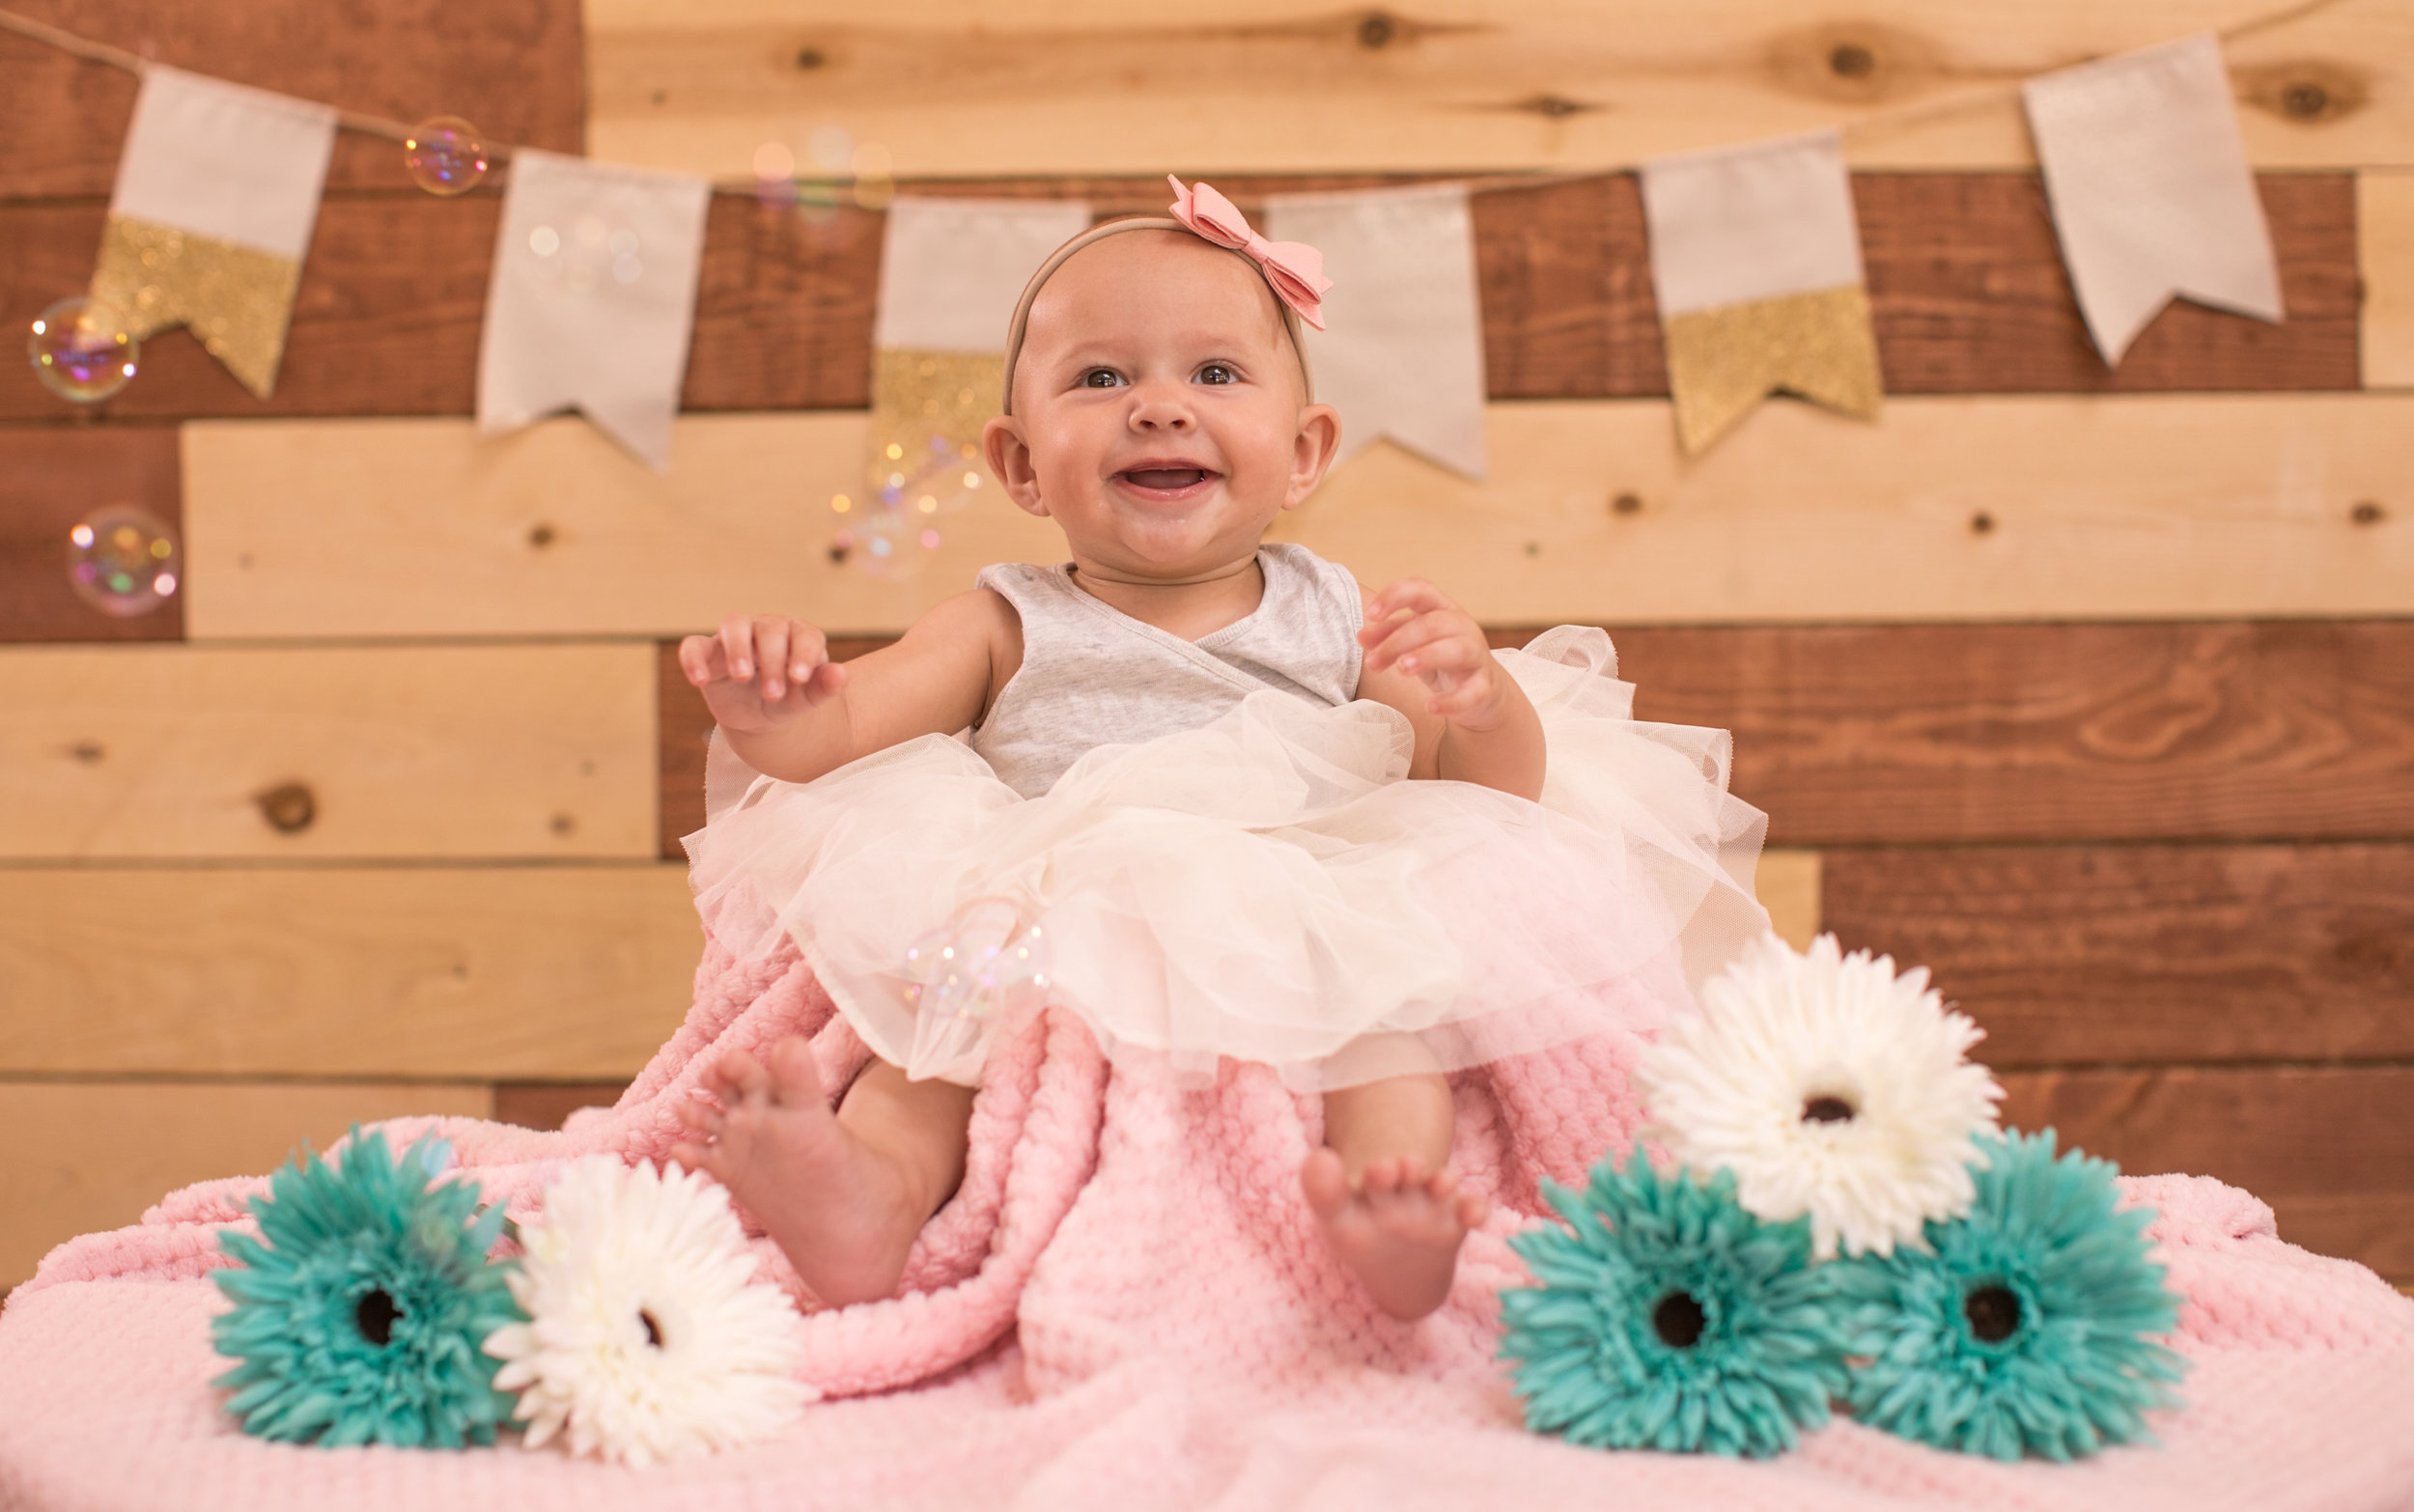 Orange County California Baby Photography Session - Baby girl smiling while sitting on a pink blanket.